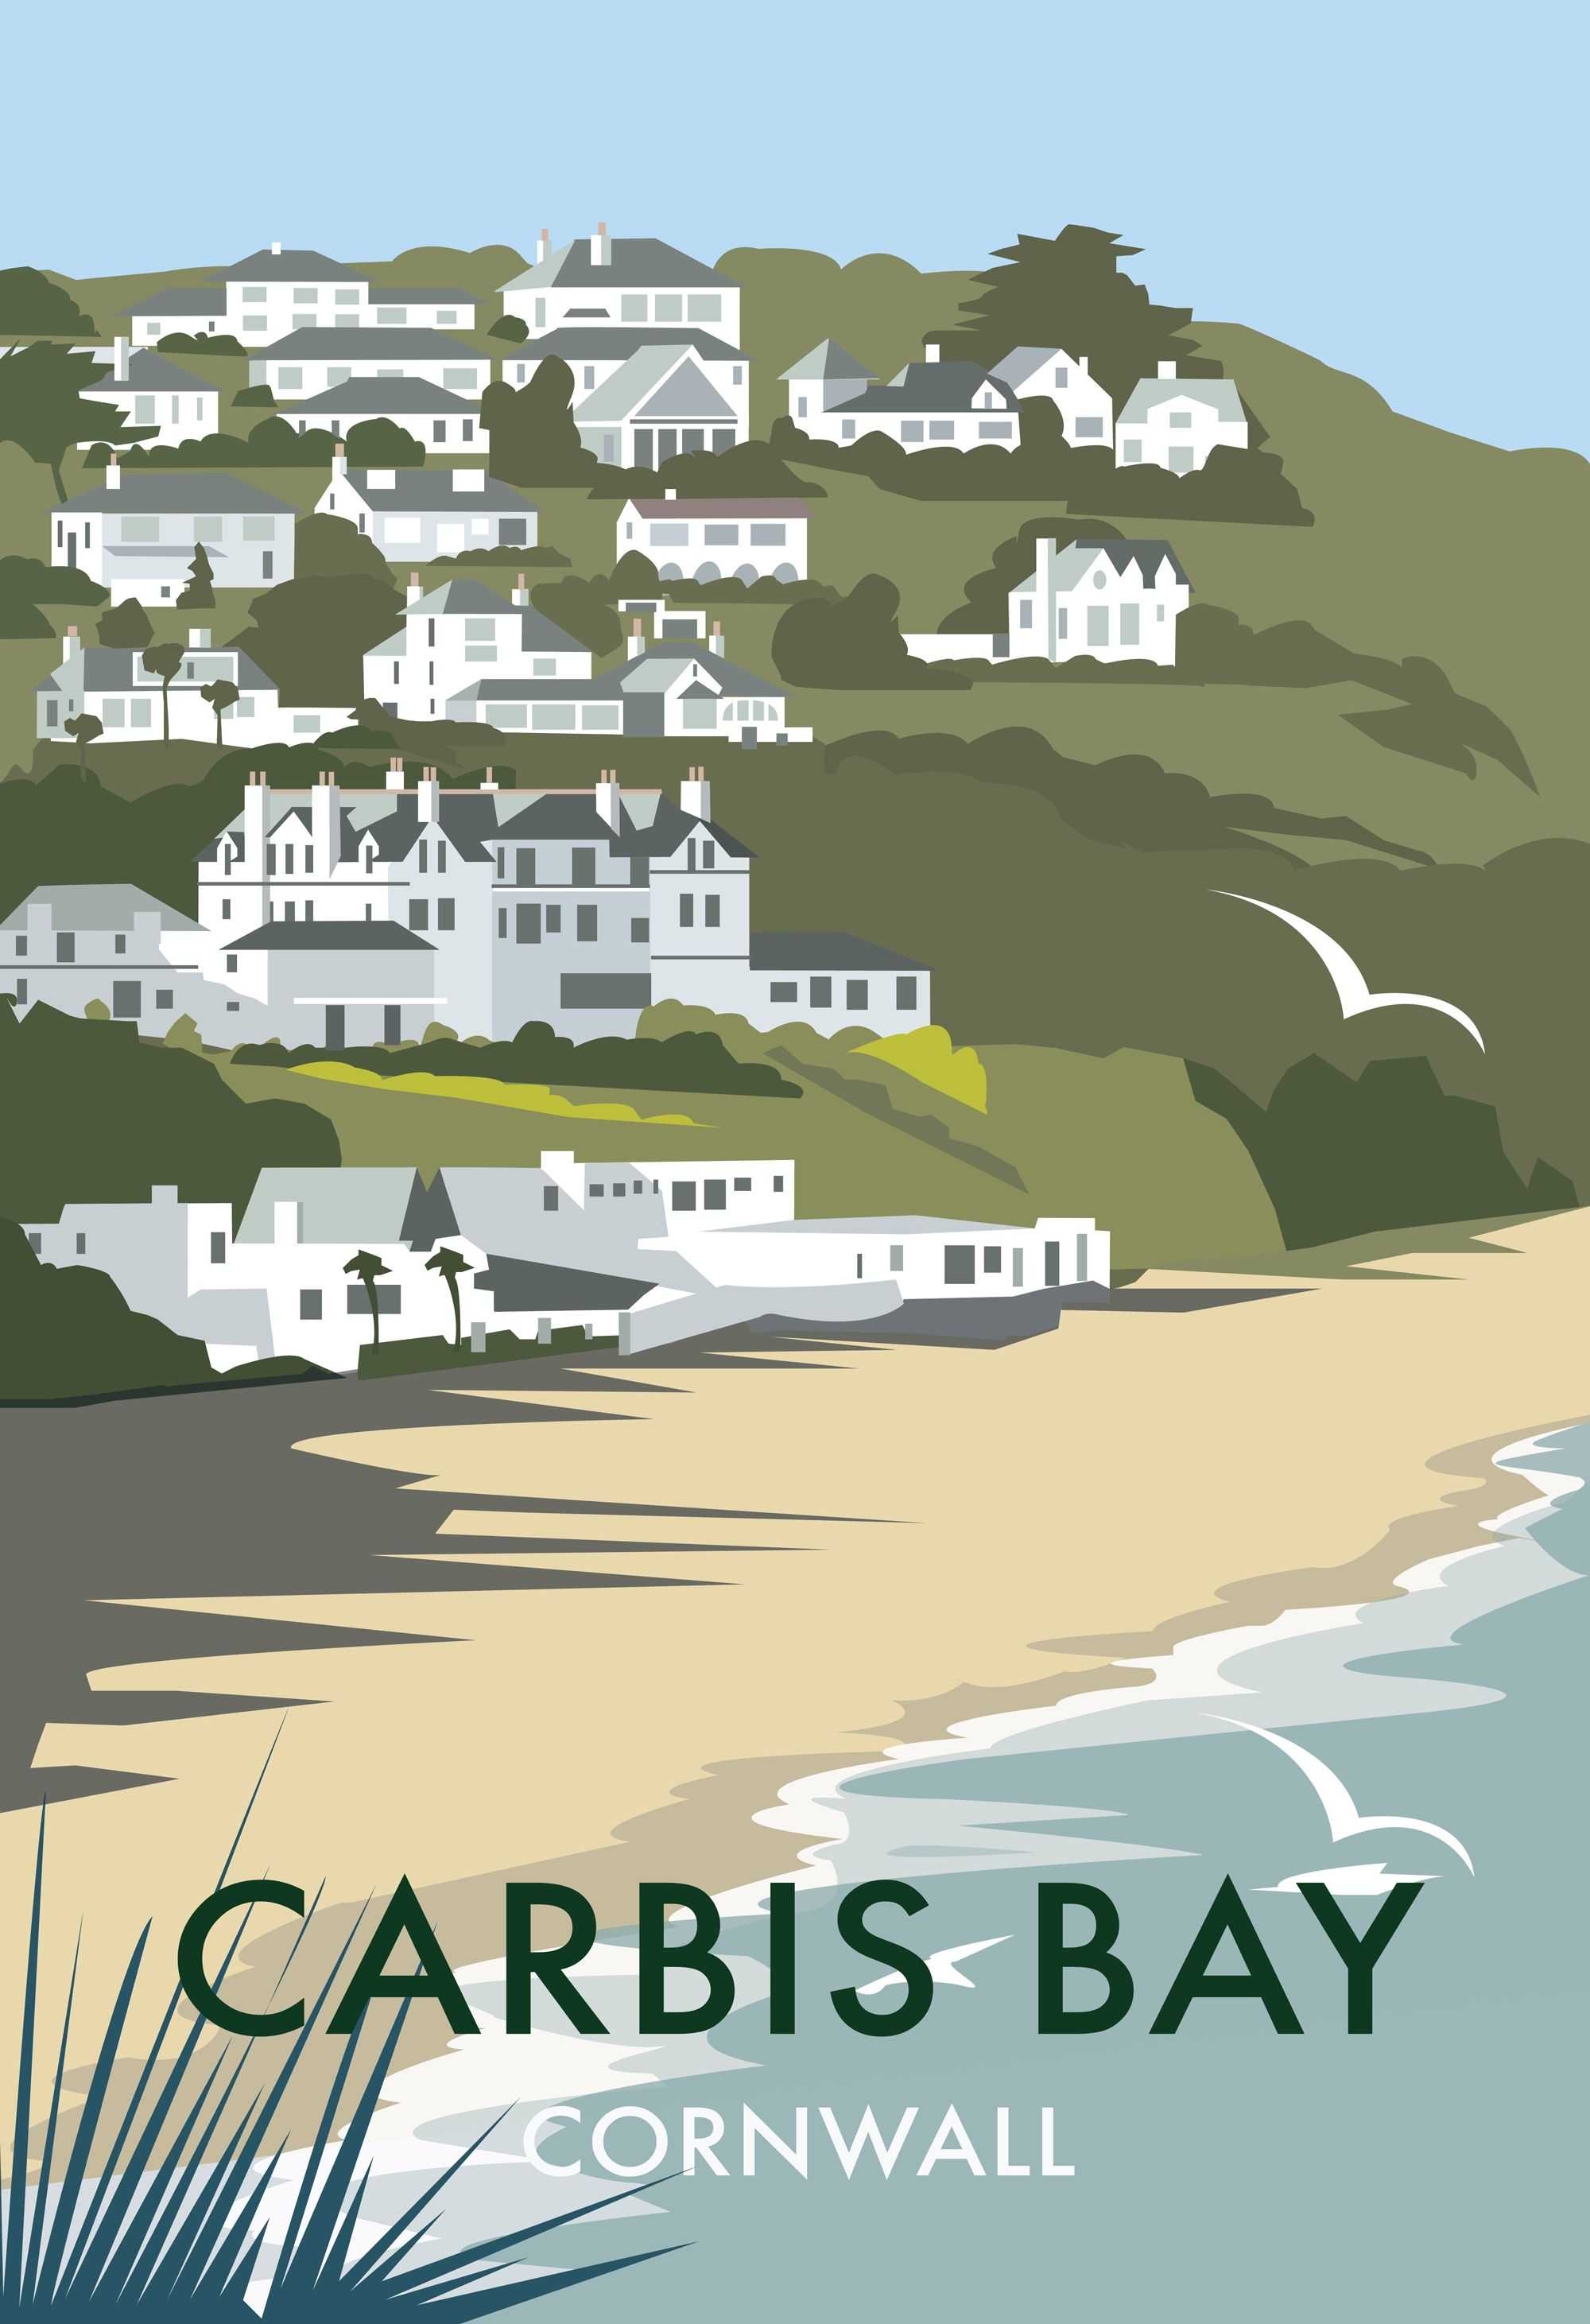 carbis bay dt35 beach and coastal print by dave thompson. Black Bedroom Furniture Sets. Home Design Ideas